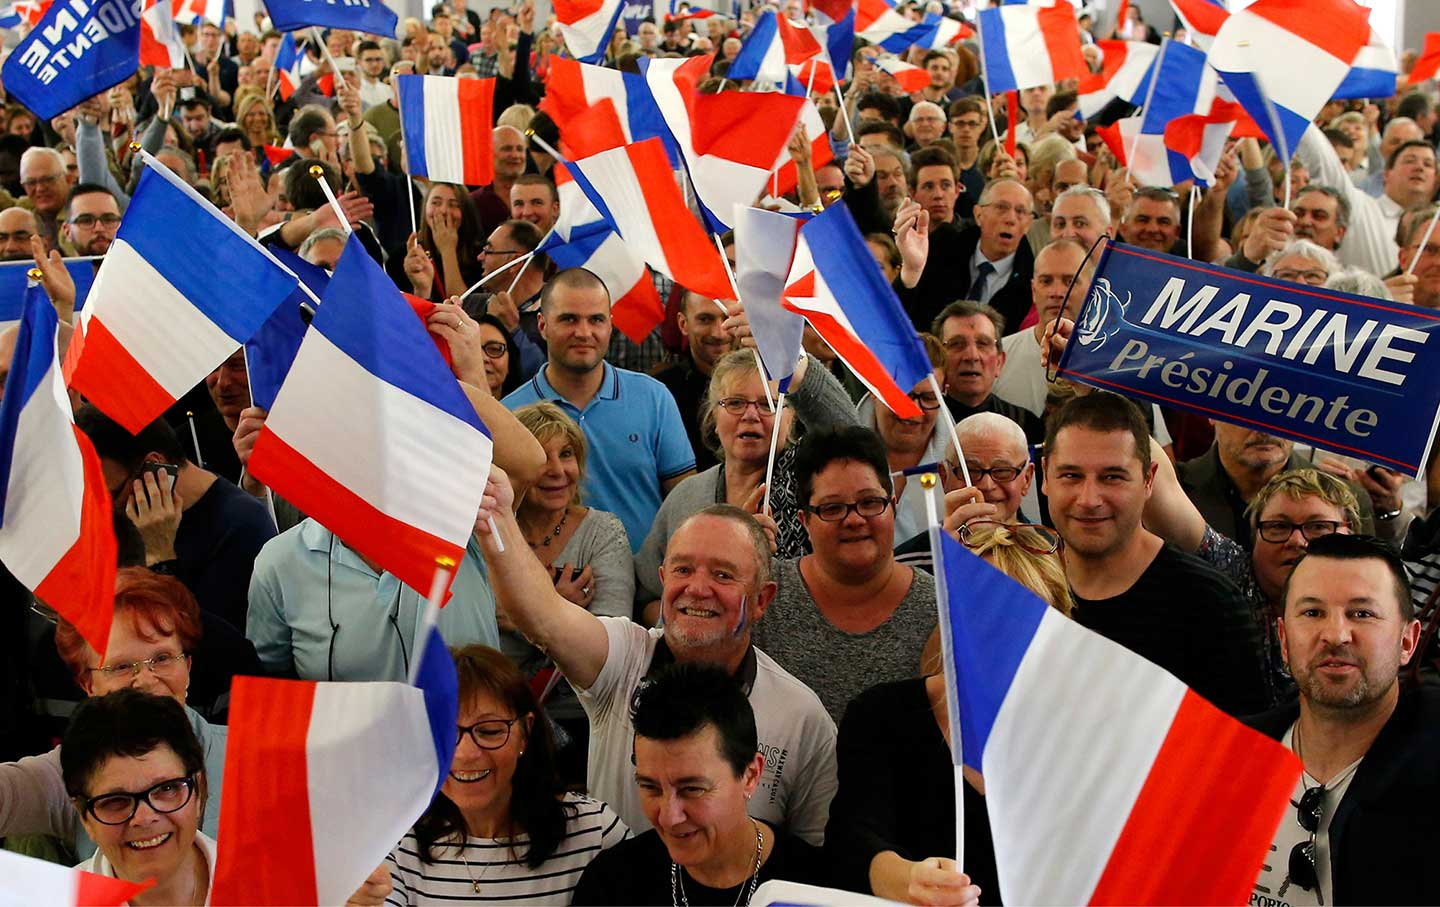 marine-le-pen-supporters